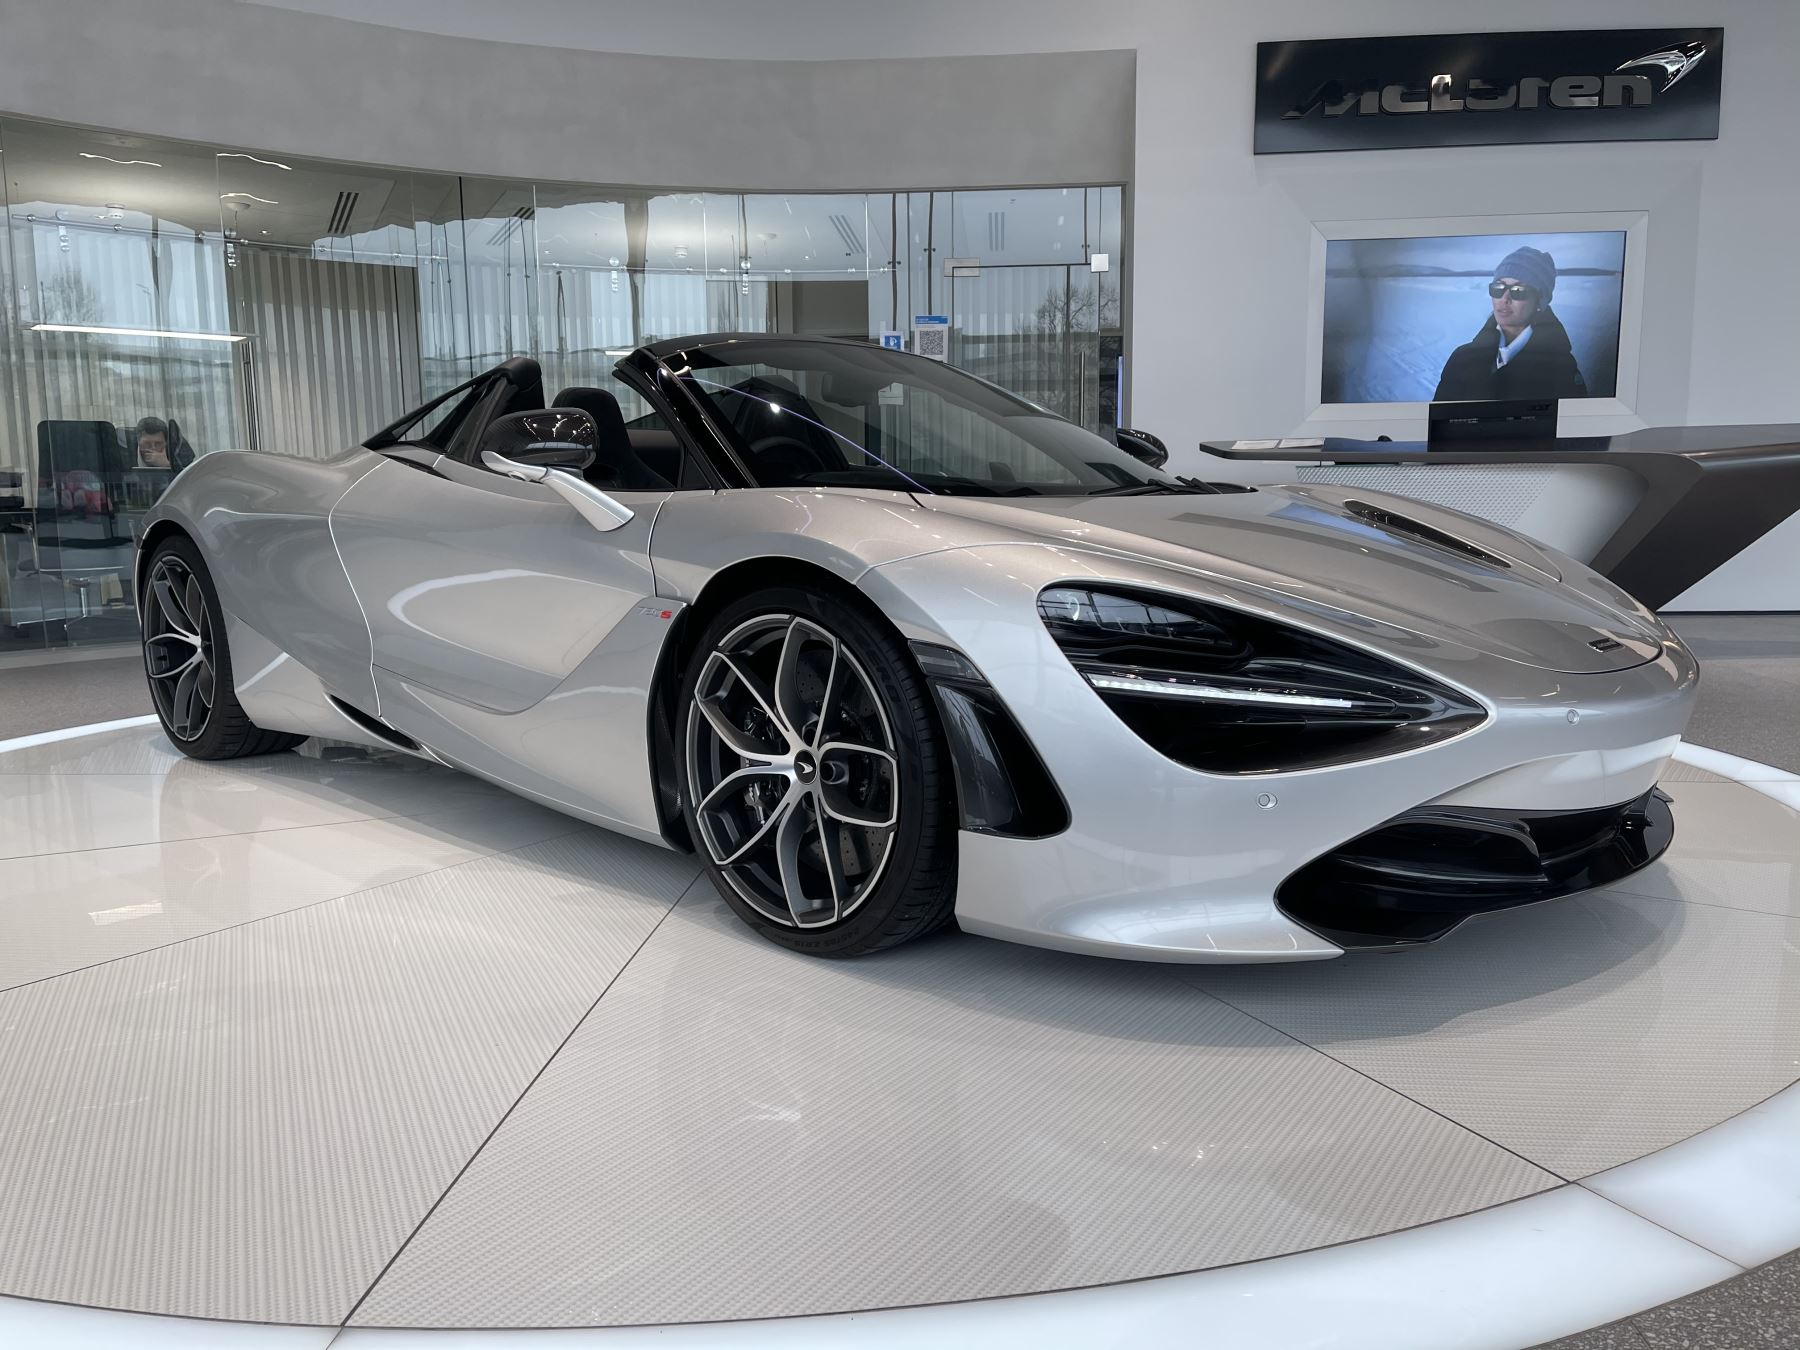 McLaren 720S Spider 4.V8 2 DR PERFORMANCE 4.0 Automatic 2 door Convertible (2021)